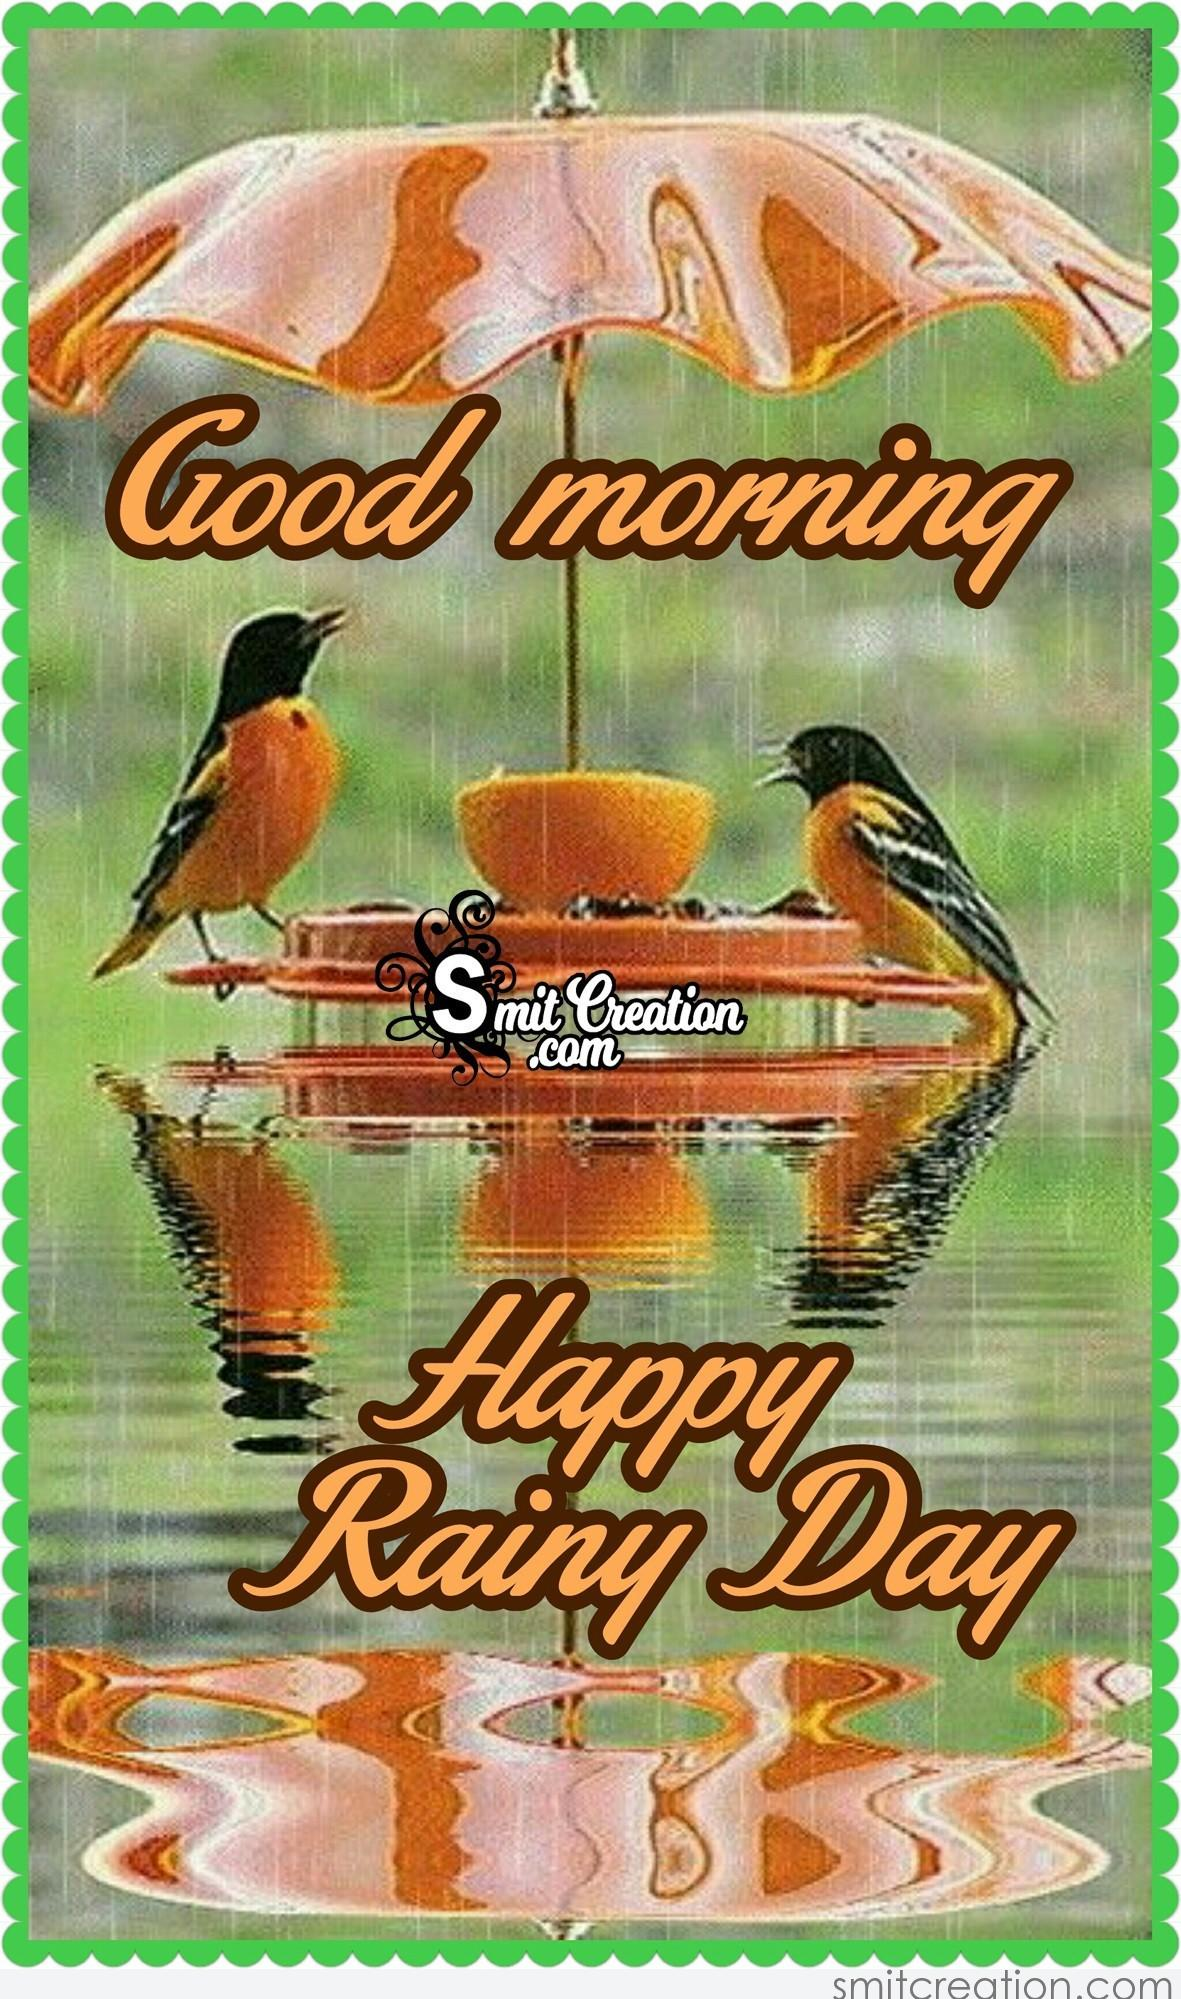 Good Morning Images For Rainy Day Wallpapersimagesorg